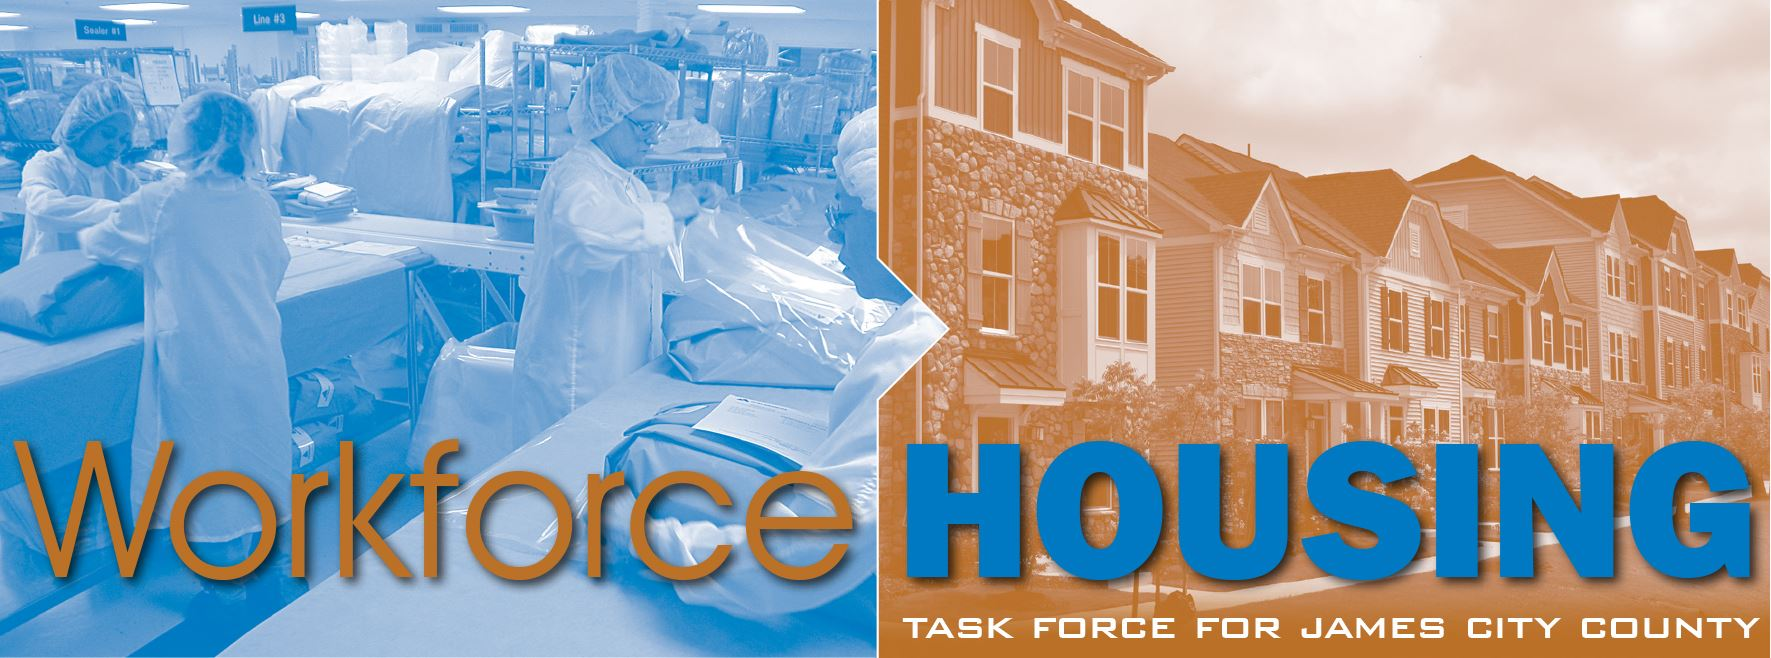 Workforce Housing Task Force for James City County